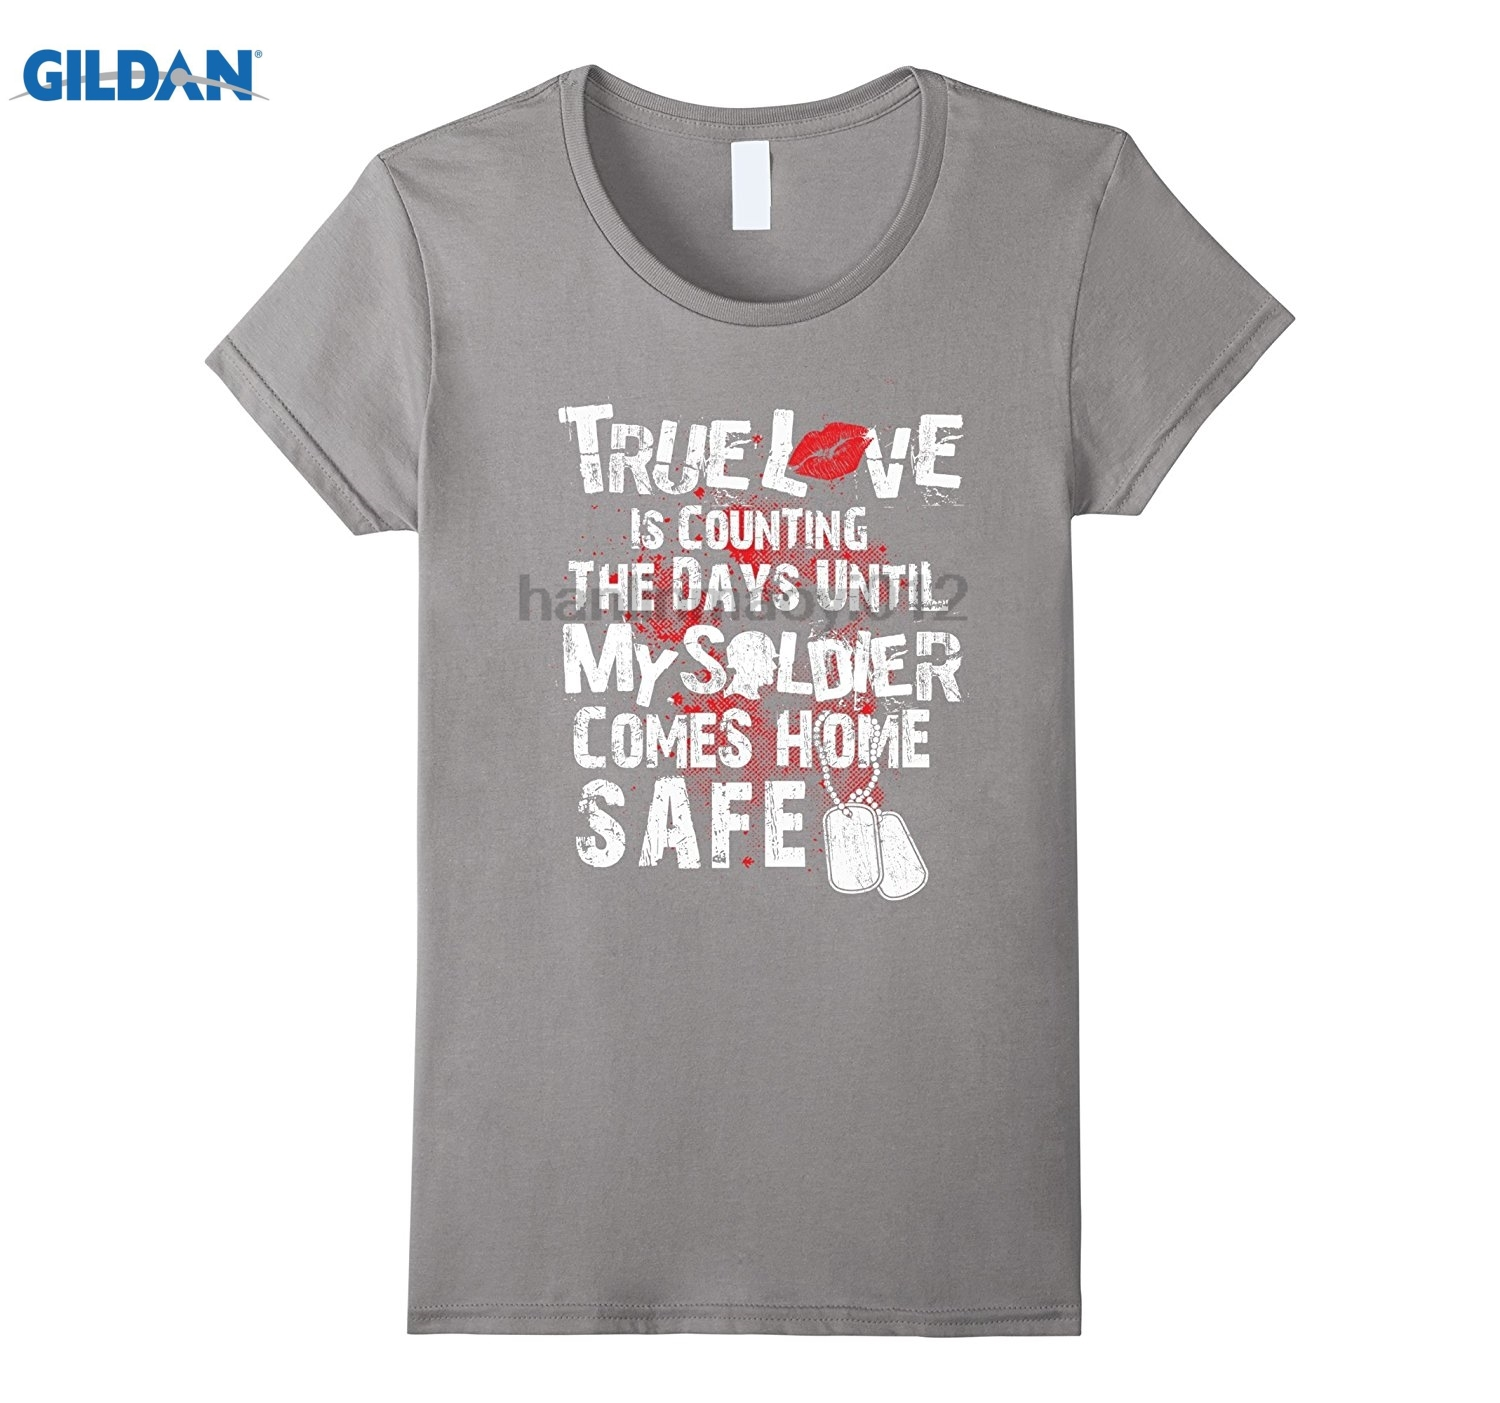 GILDAN Army Wife and Girlfriend T-Shirt - Until My Solider is Safe Womens T-shirt